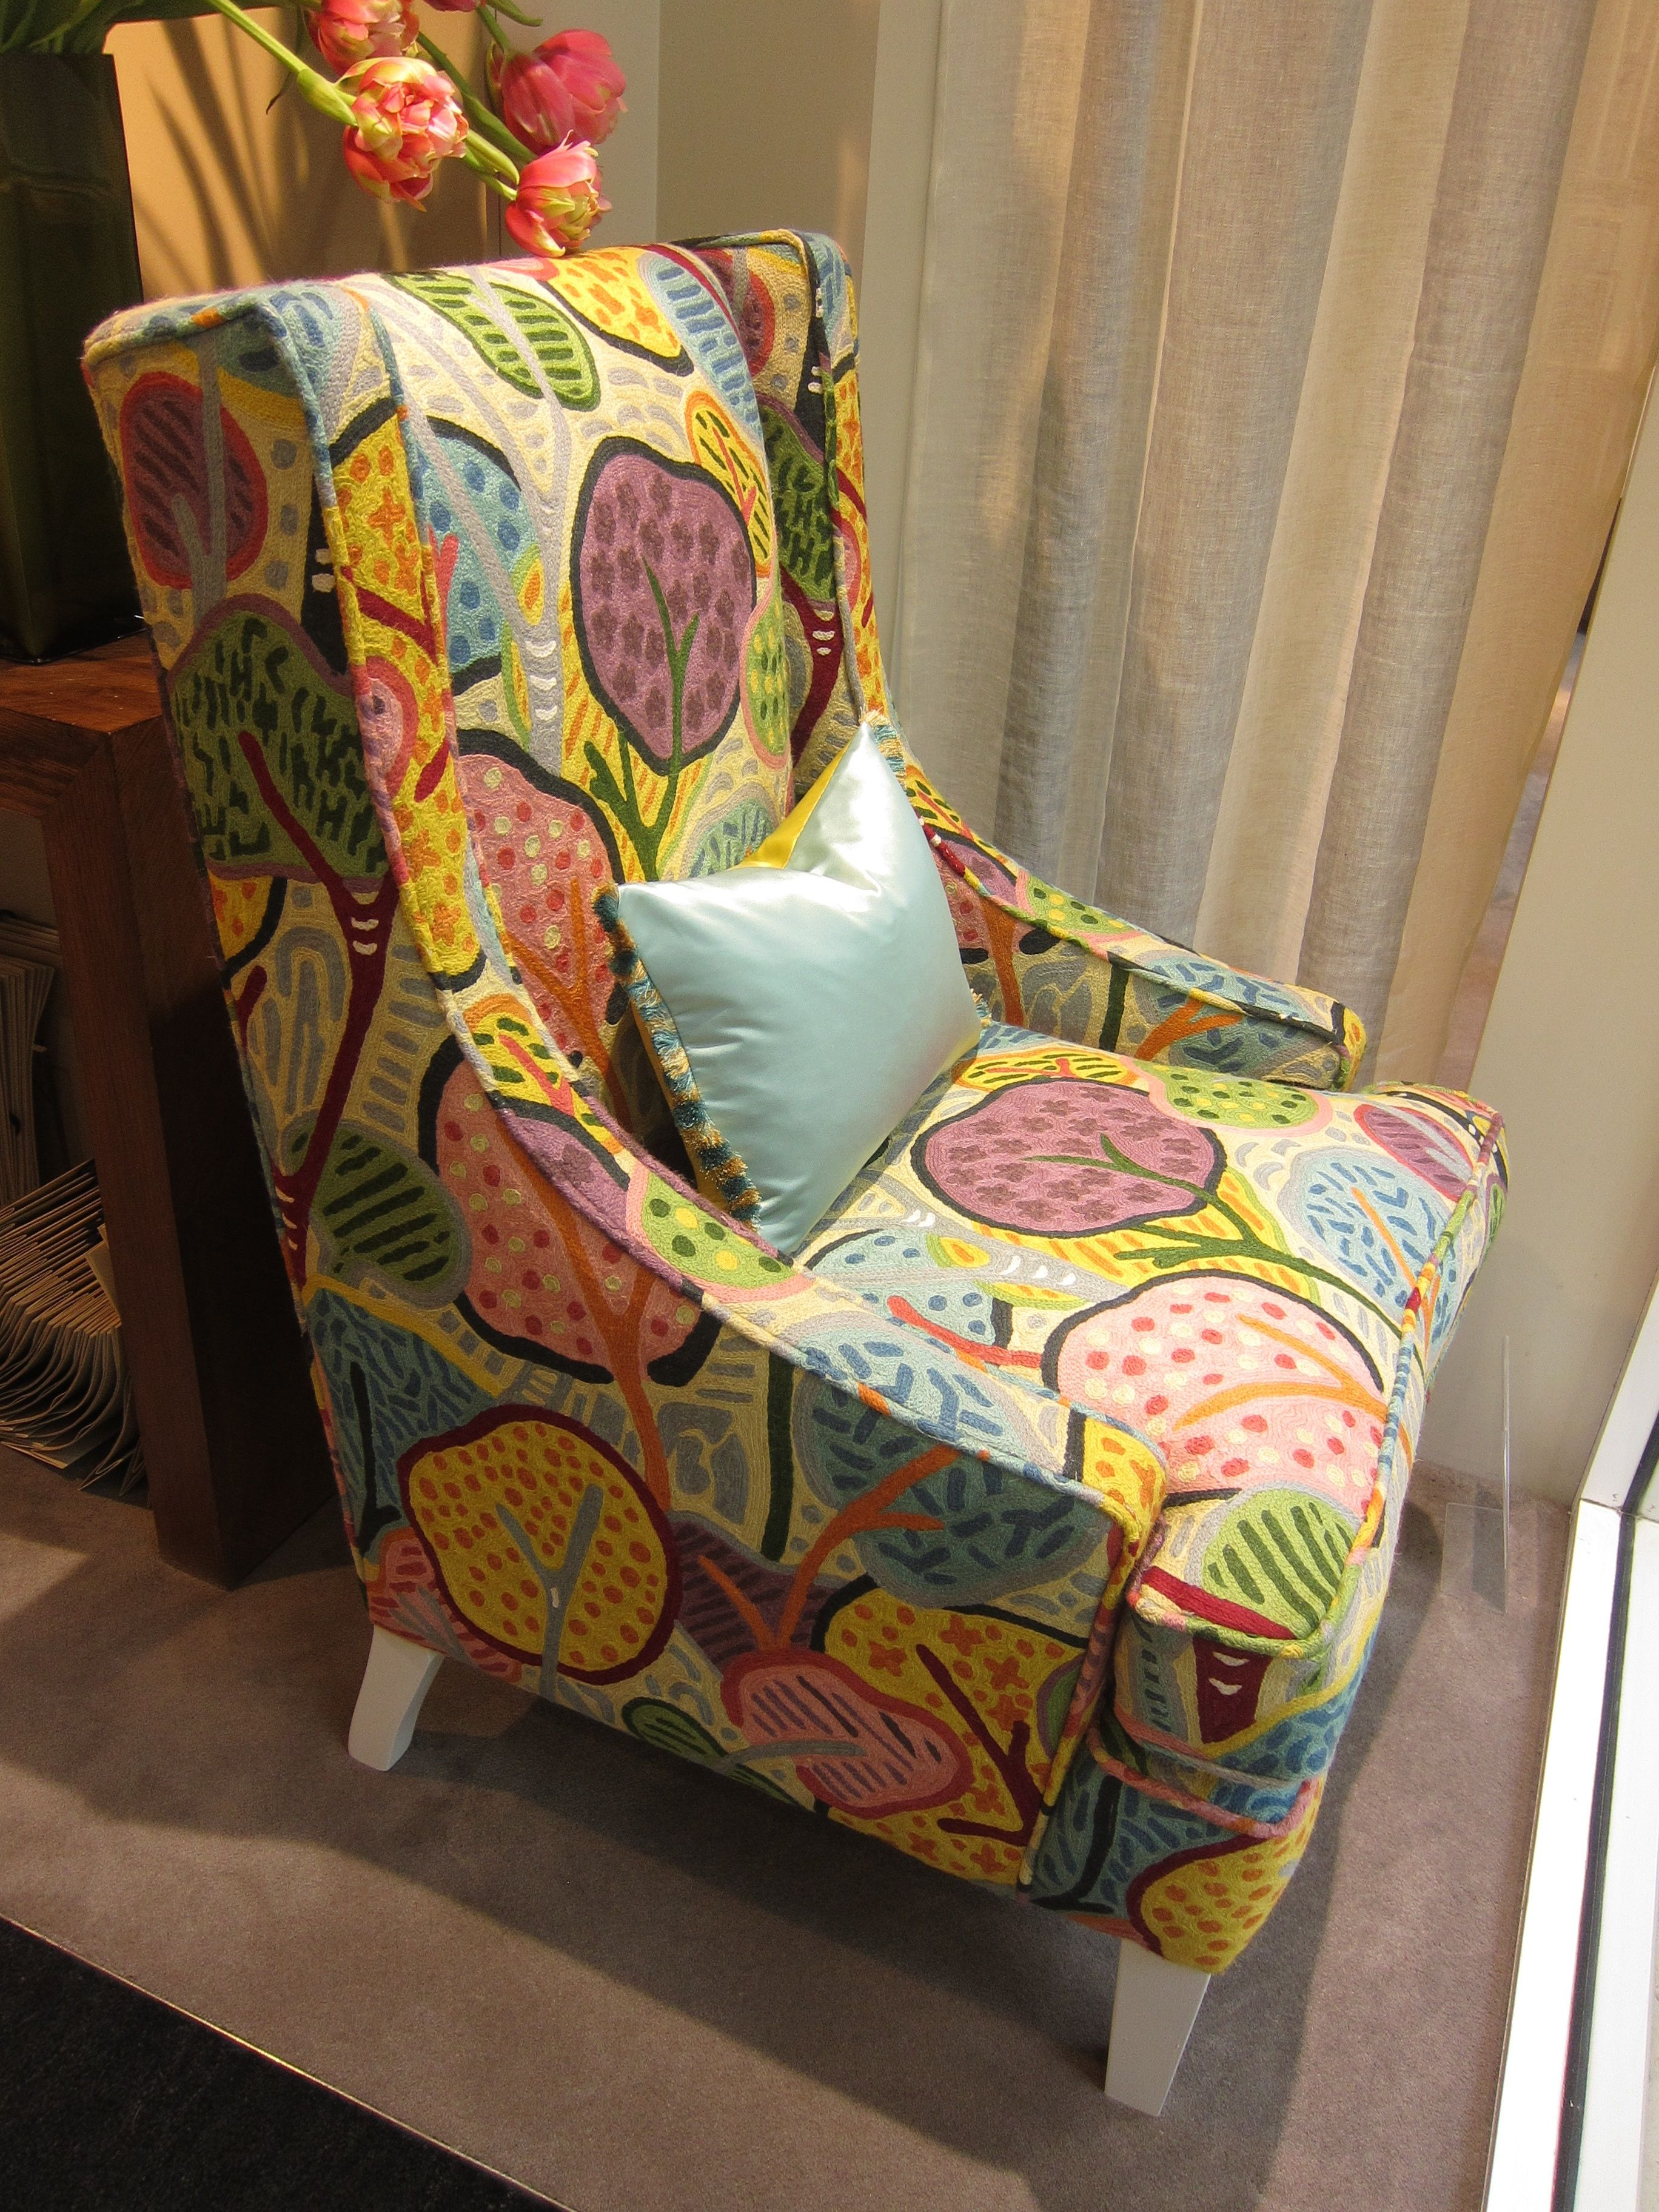 Amazing Chair Covered In Clarence House   Kharif Crewel Spotted At The Turnell U0026  Gigon Showroom @designcentrech